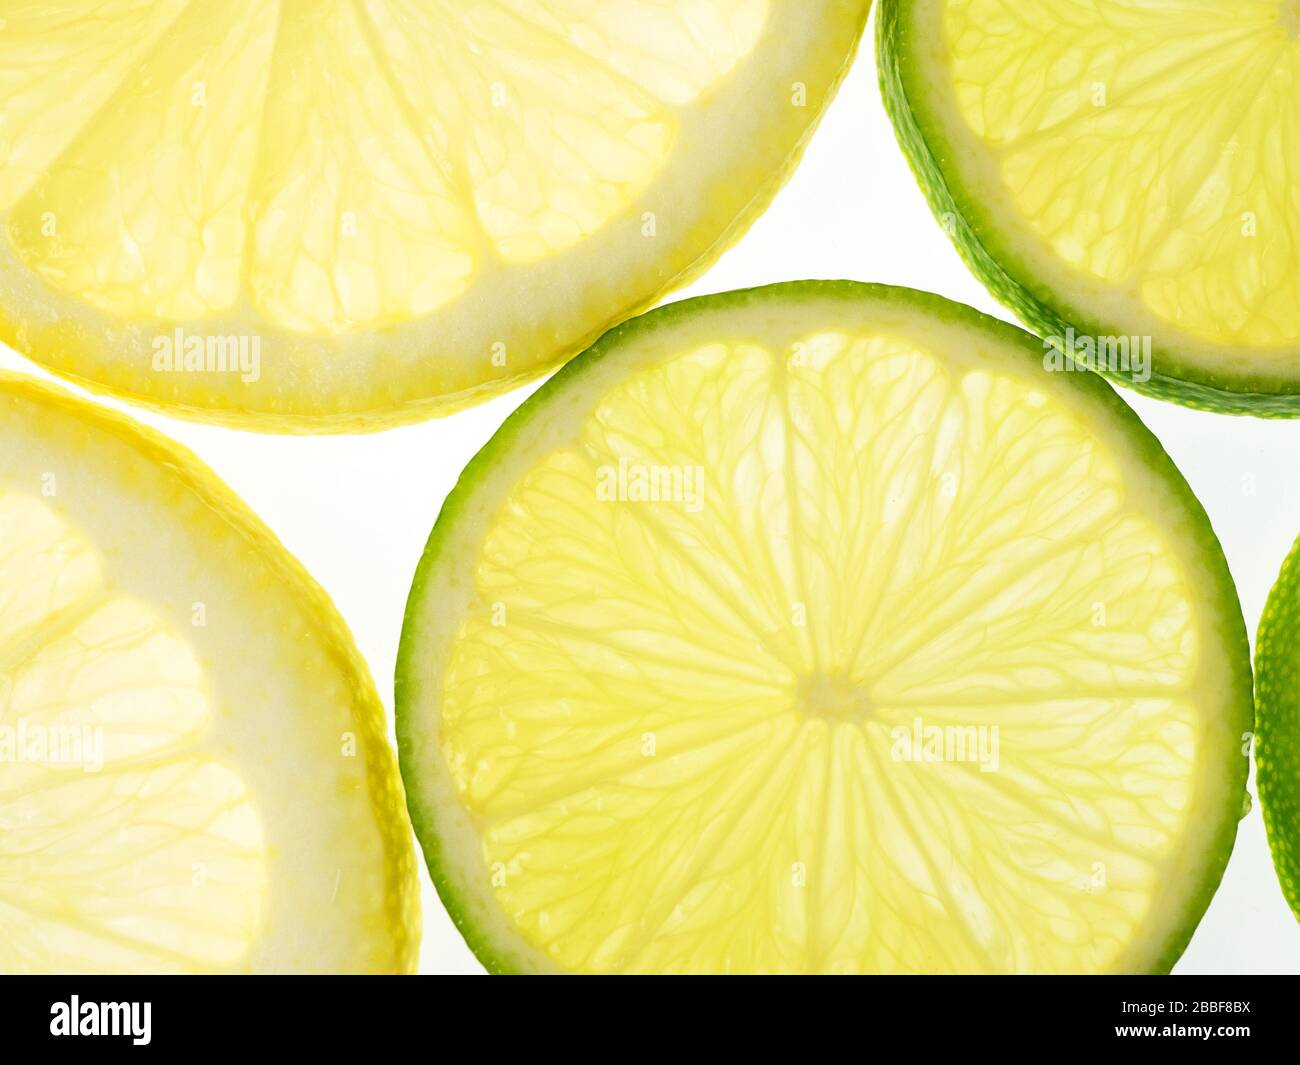 Slices of lemon and lime on a white background Stock Photo